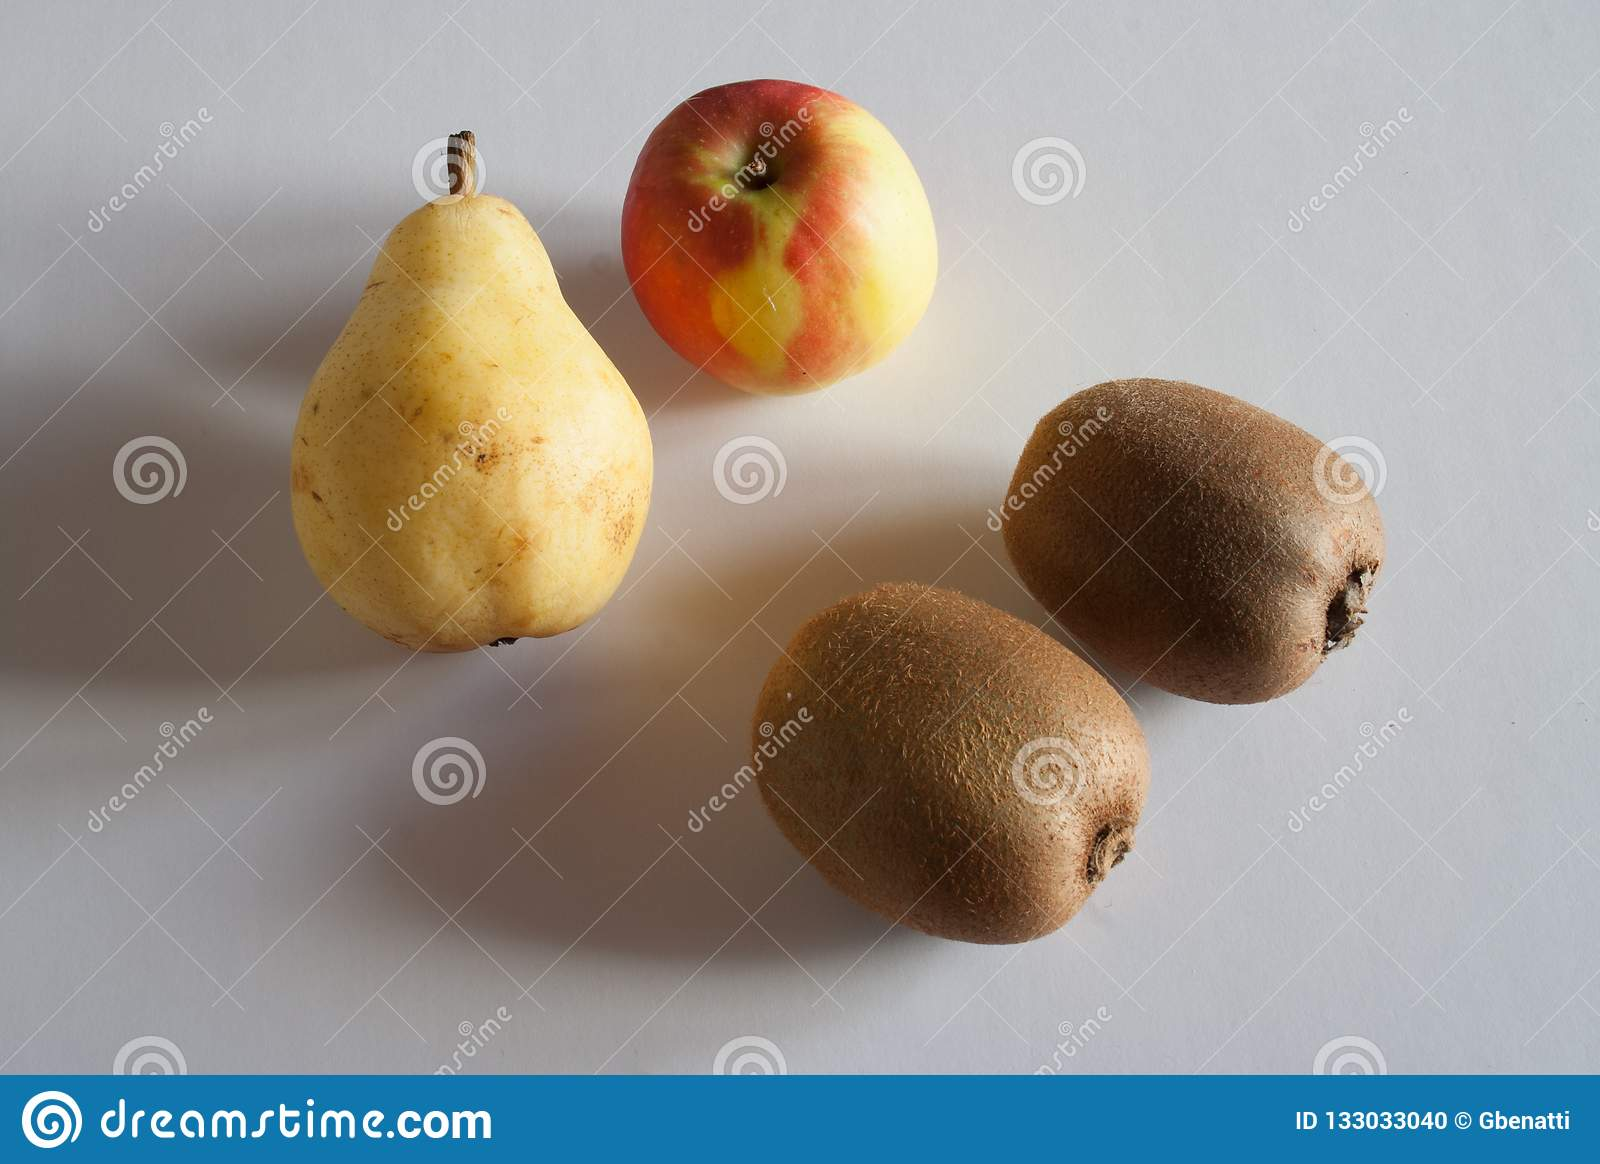 Four fruits with apple pear and two kiwis